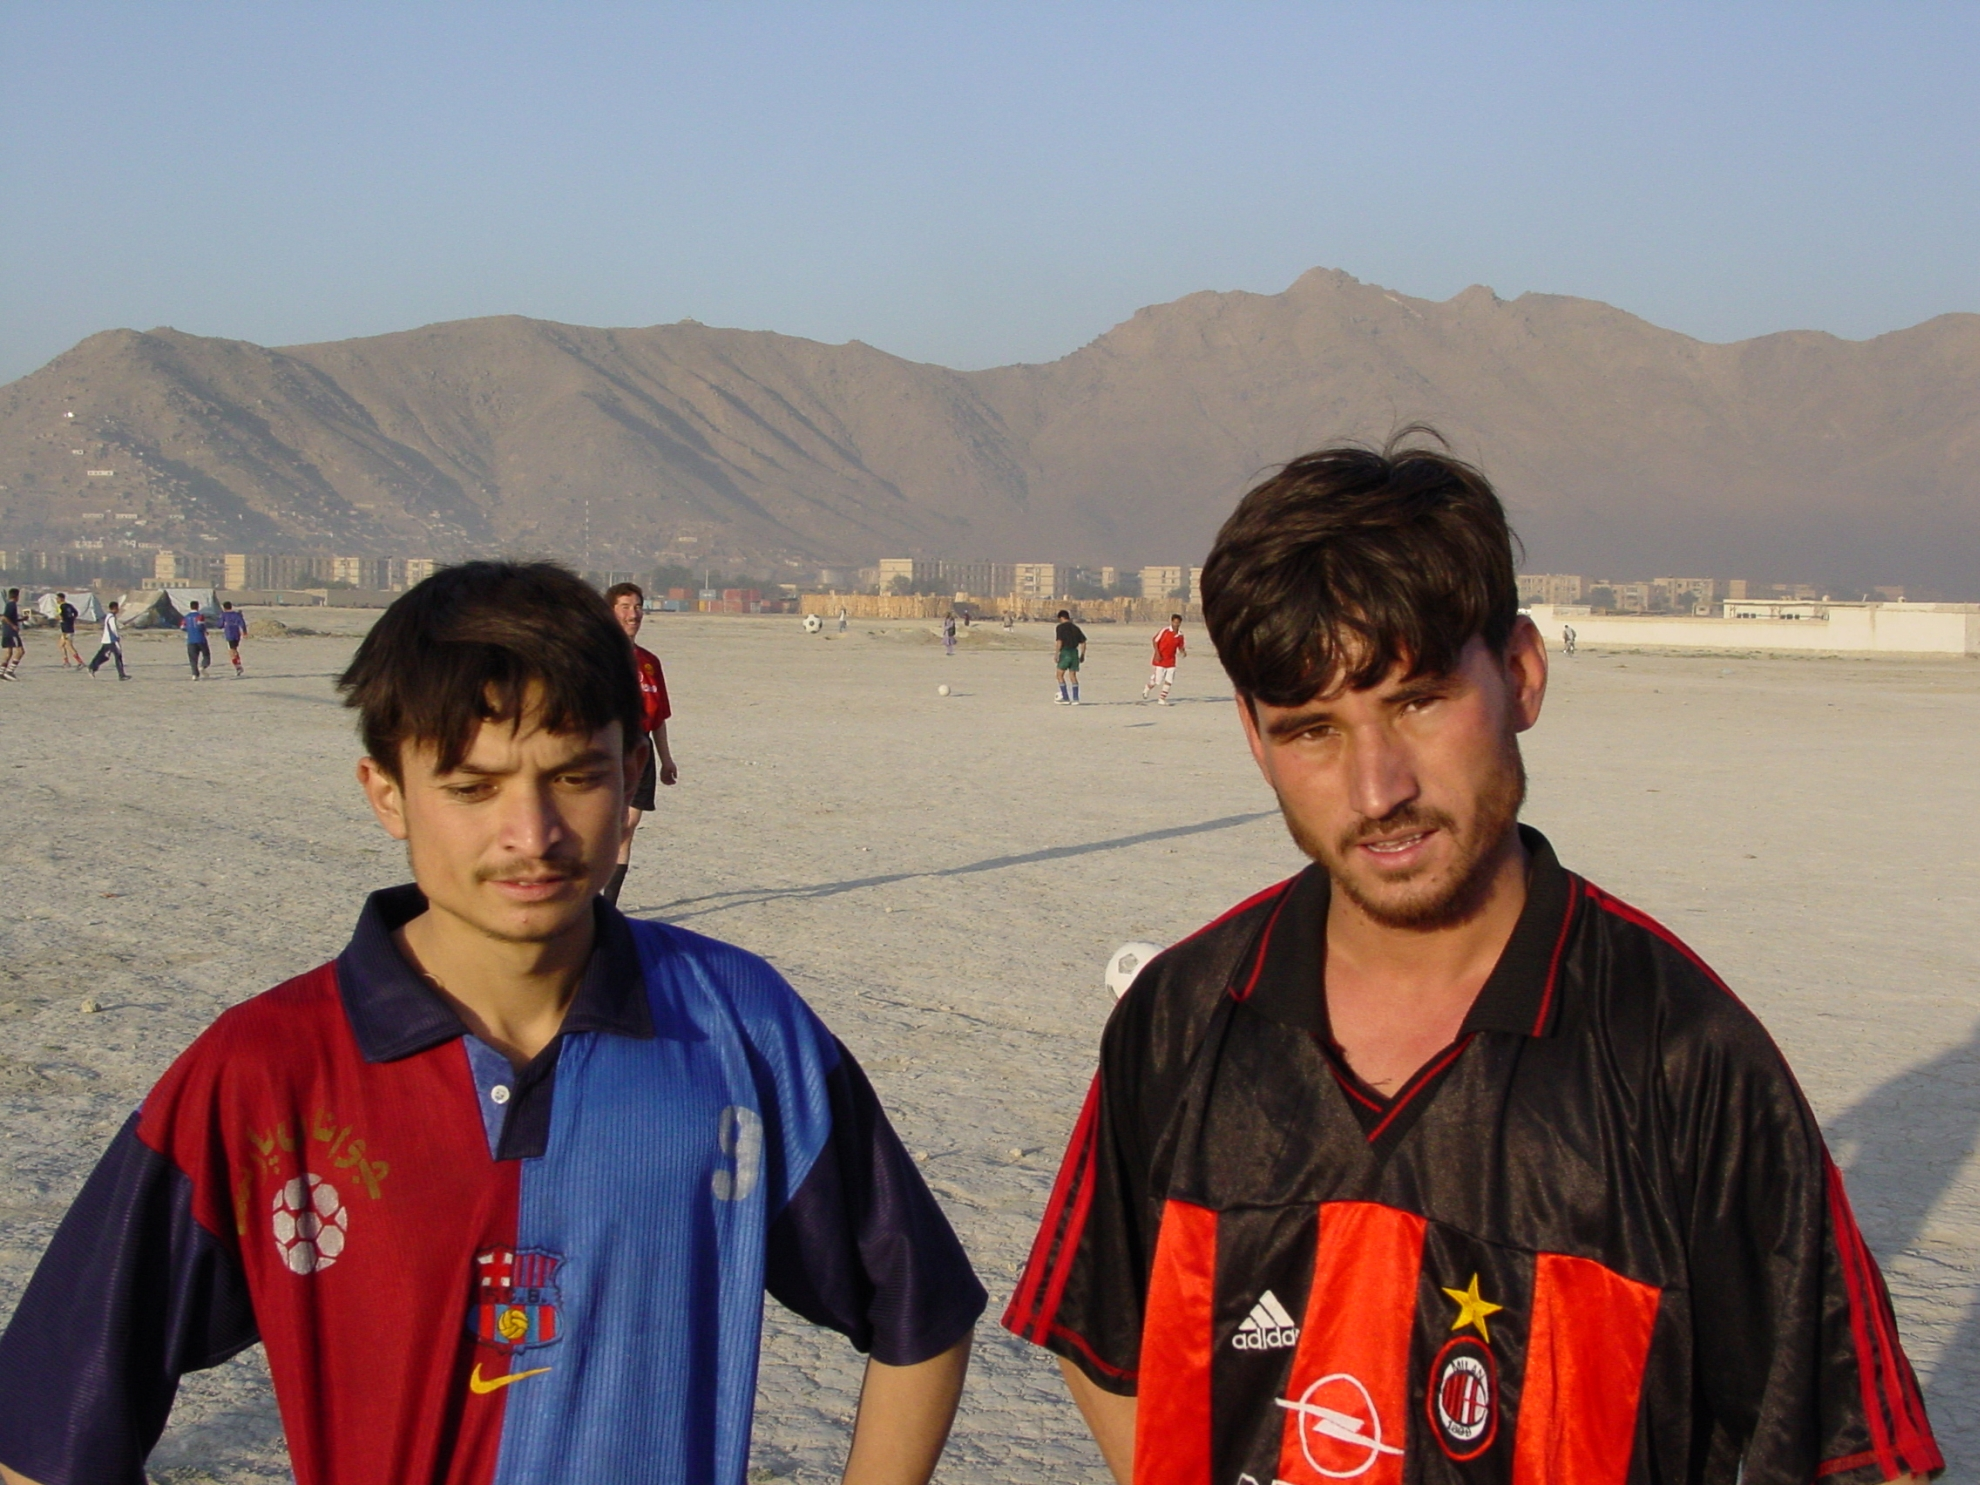 """We escaped from Helmand and have been in Kabul for roughly a year now. It's difficult to find work, but we play football to pass the time. That makes you forget your problems for a little while"". Photo: Jens Kjær Jensen, 2003"